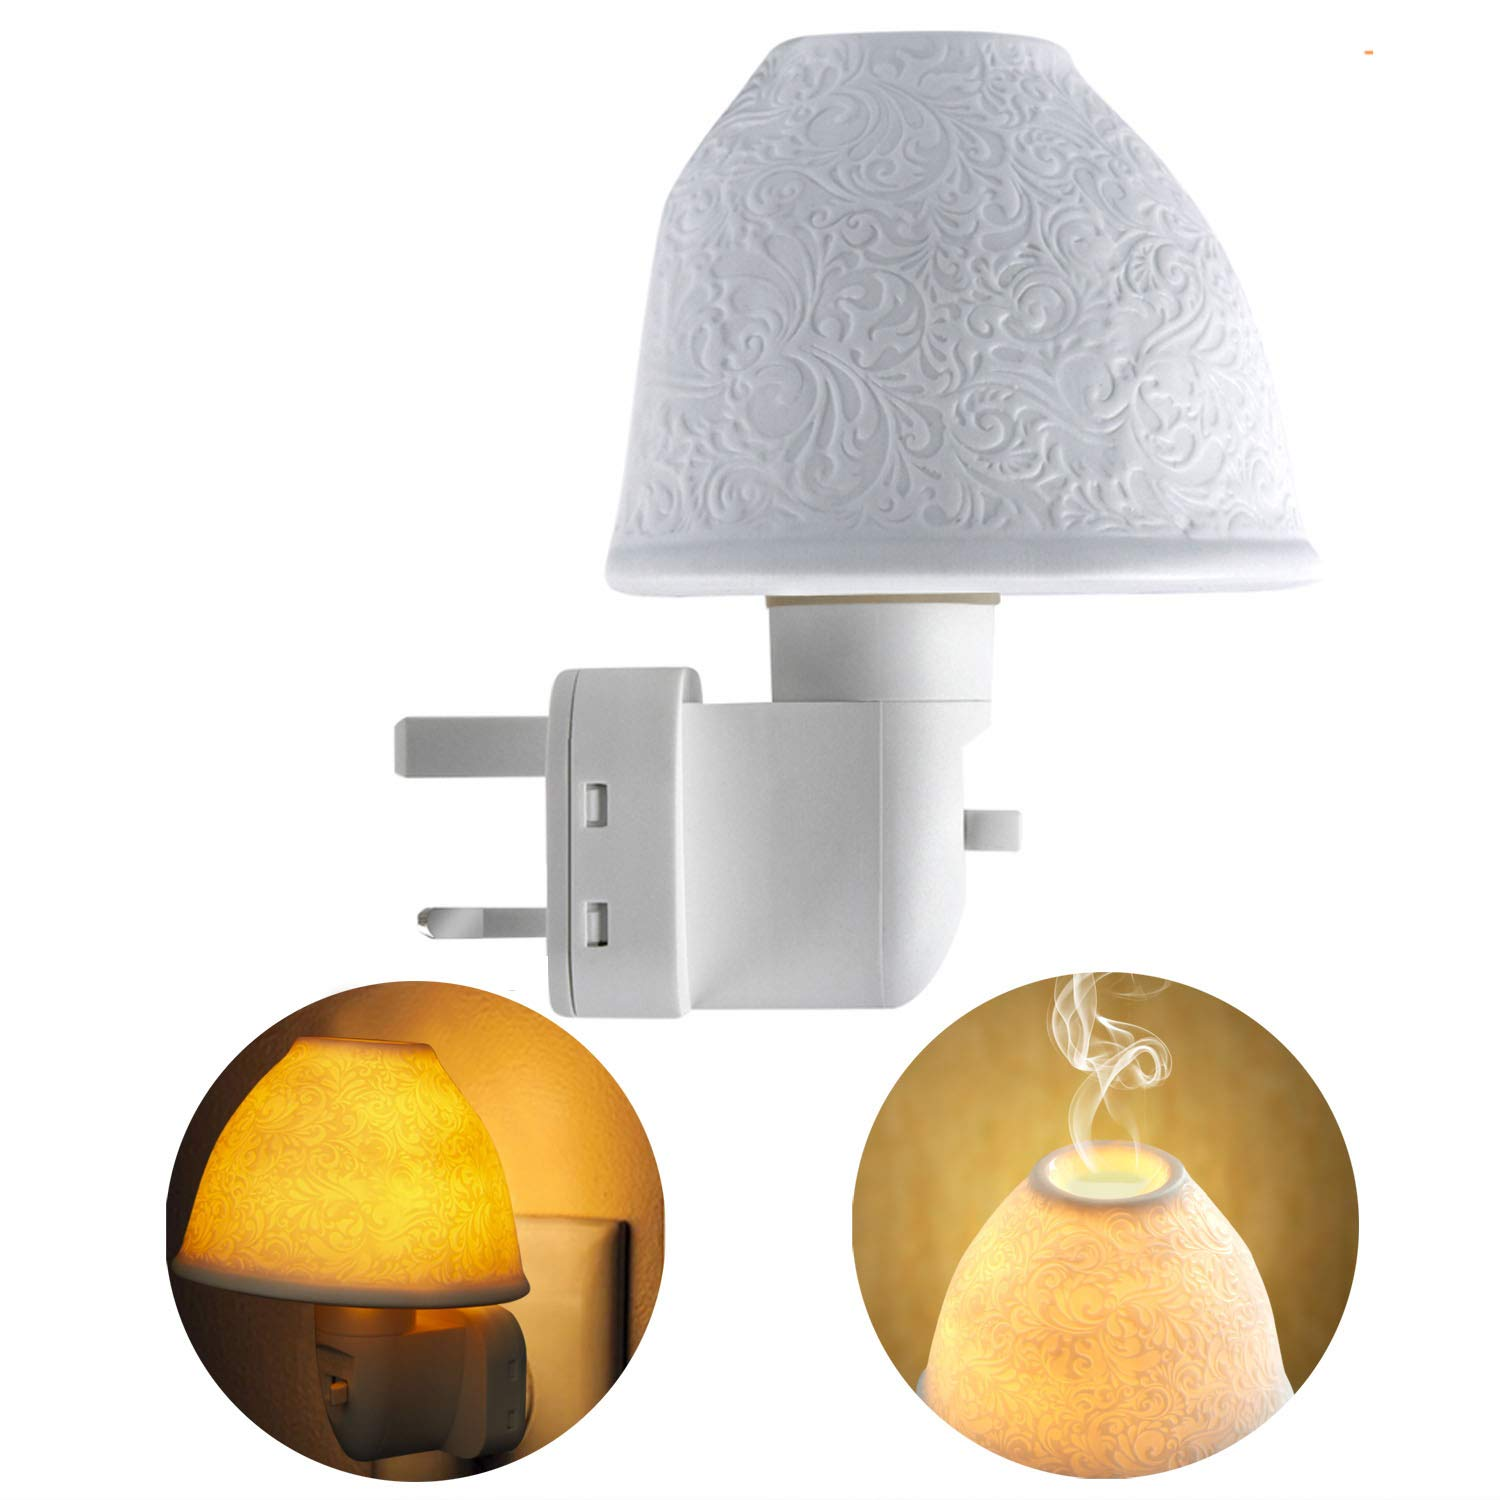 2 in 1 ceramic Aroma oil lamp plug in and night light